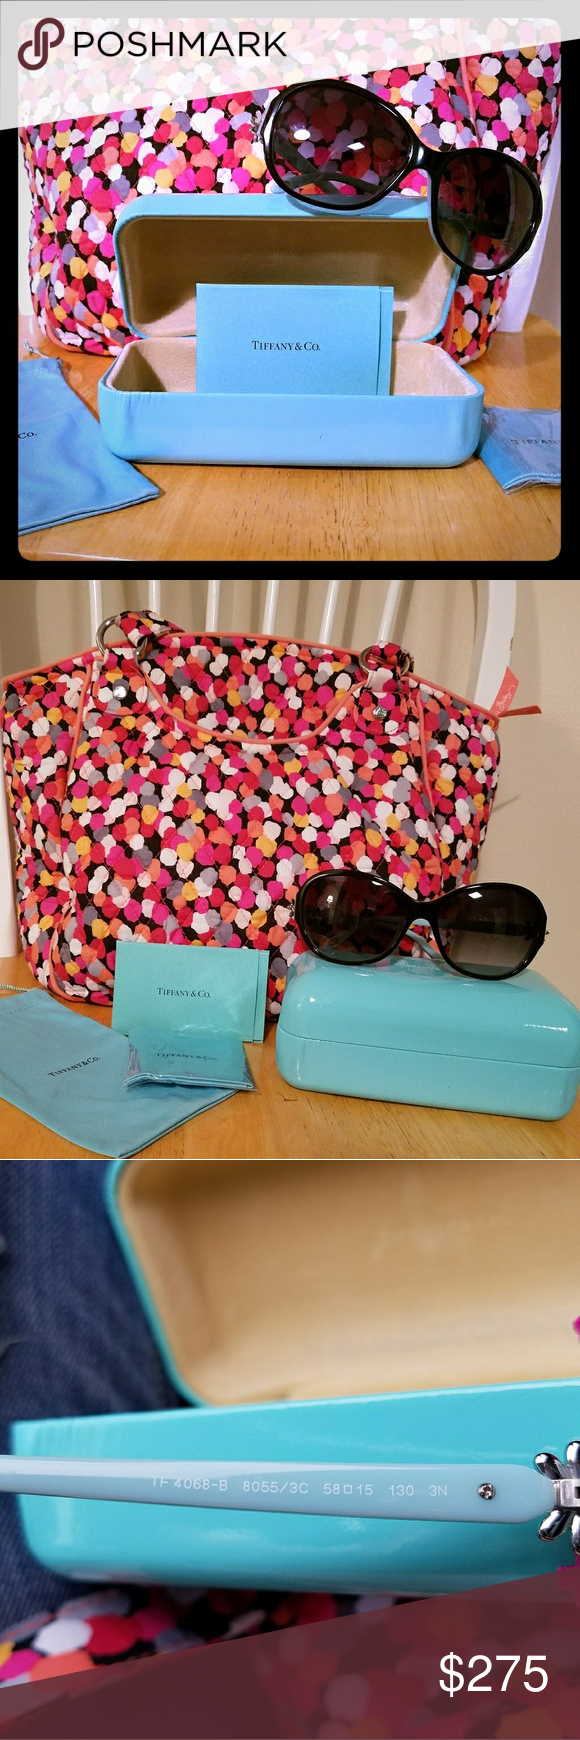 14ae4a225922 🎀Tiffany   Co.🎀 Daisy Sunglasses Authentic Tiffany and Co sunglasses just  in time for summer! They have a cute little Silver 🌼Daisy🌼 on the side of  them ...